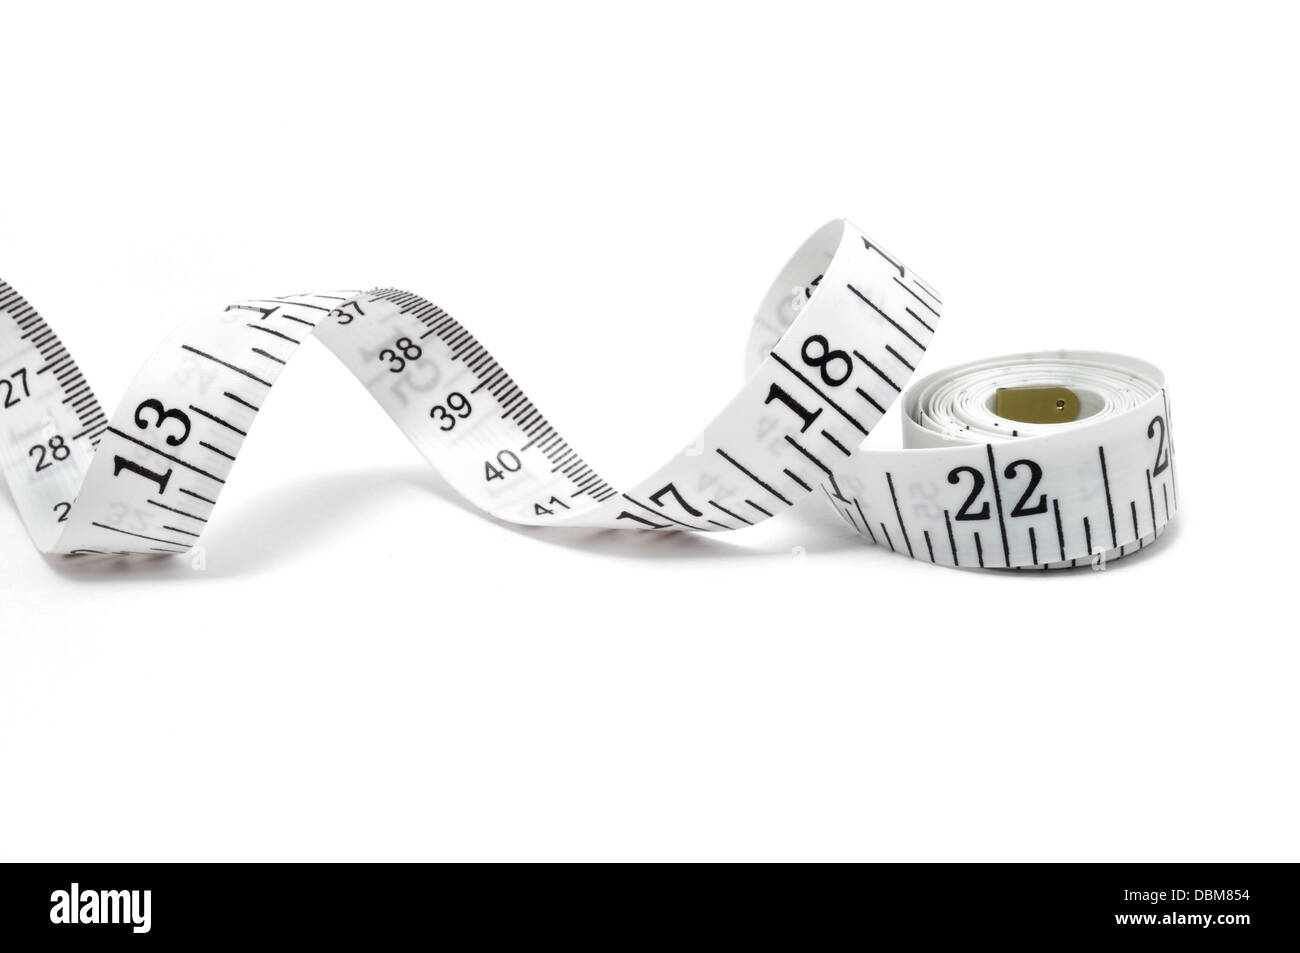 Tape measure isolated on a white background - Stock Image